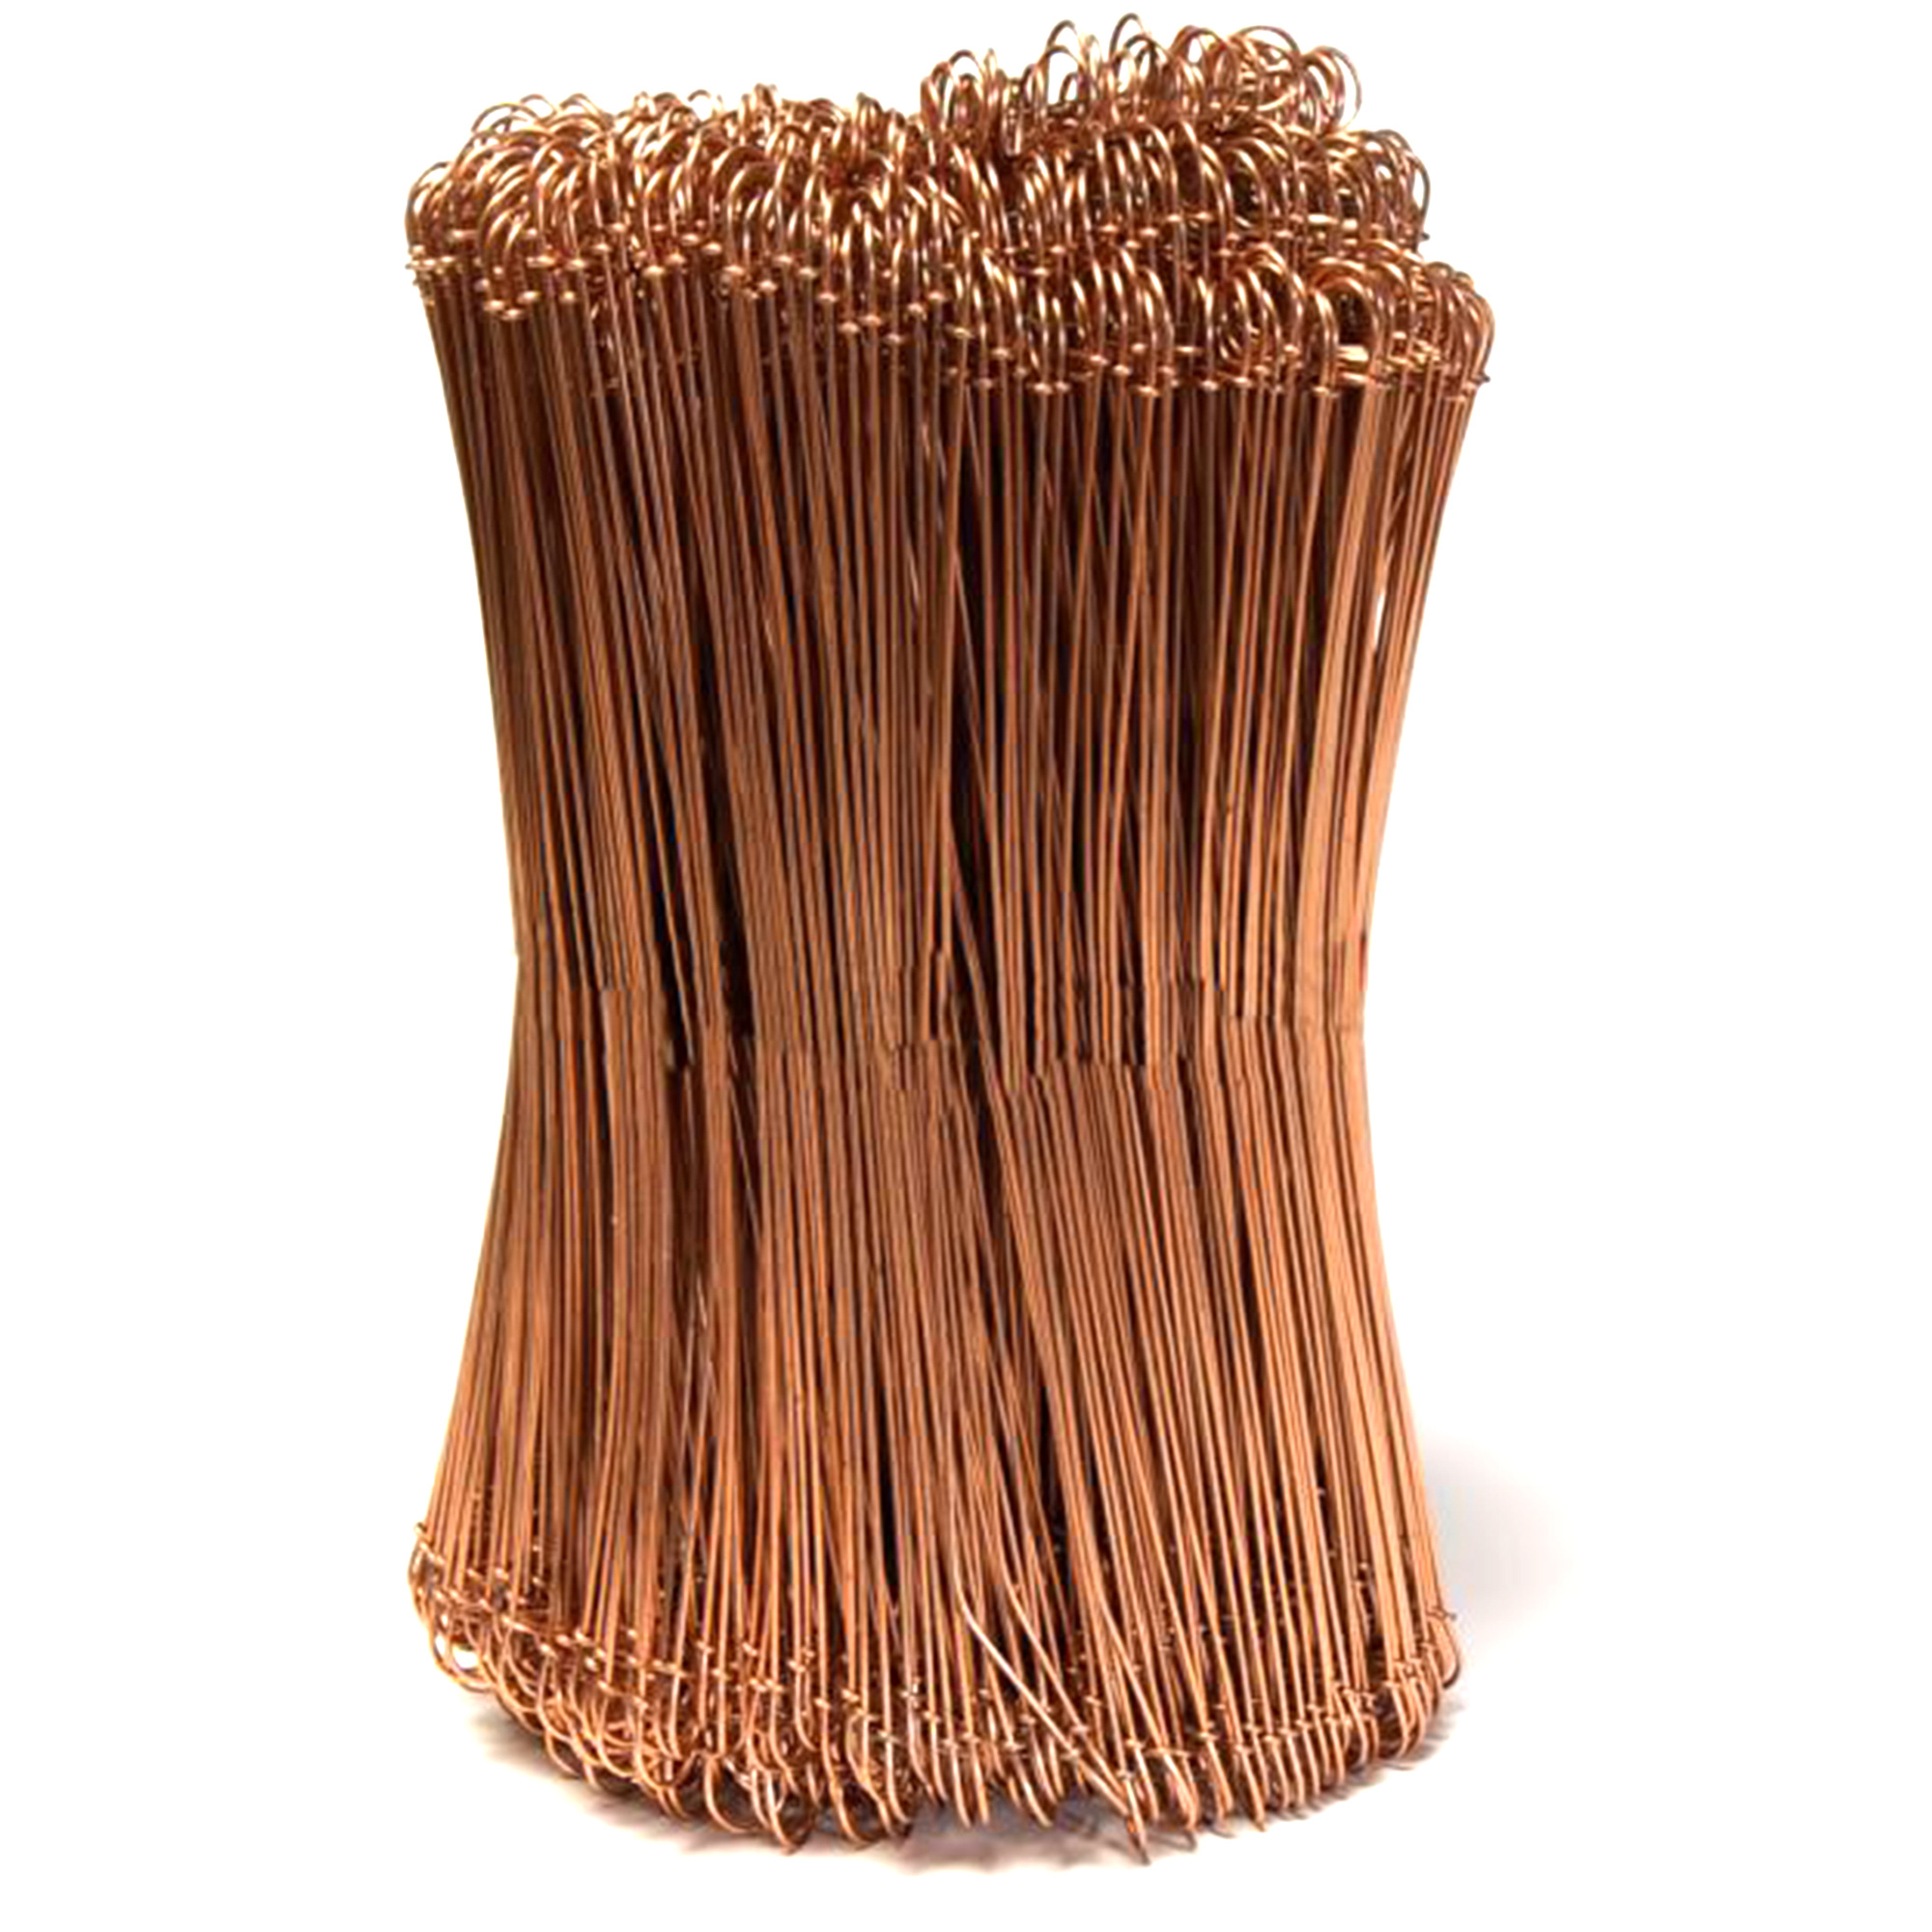 c4bfe3882a35 WIRE TIES COPPER COATED Archives - A & A Packaging